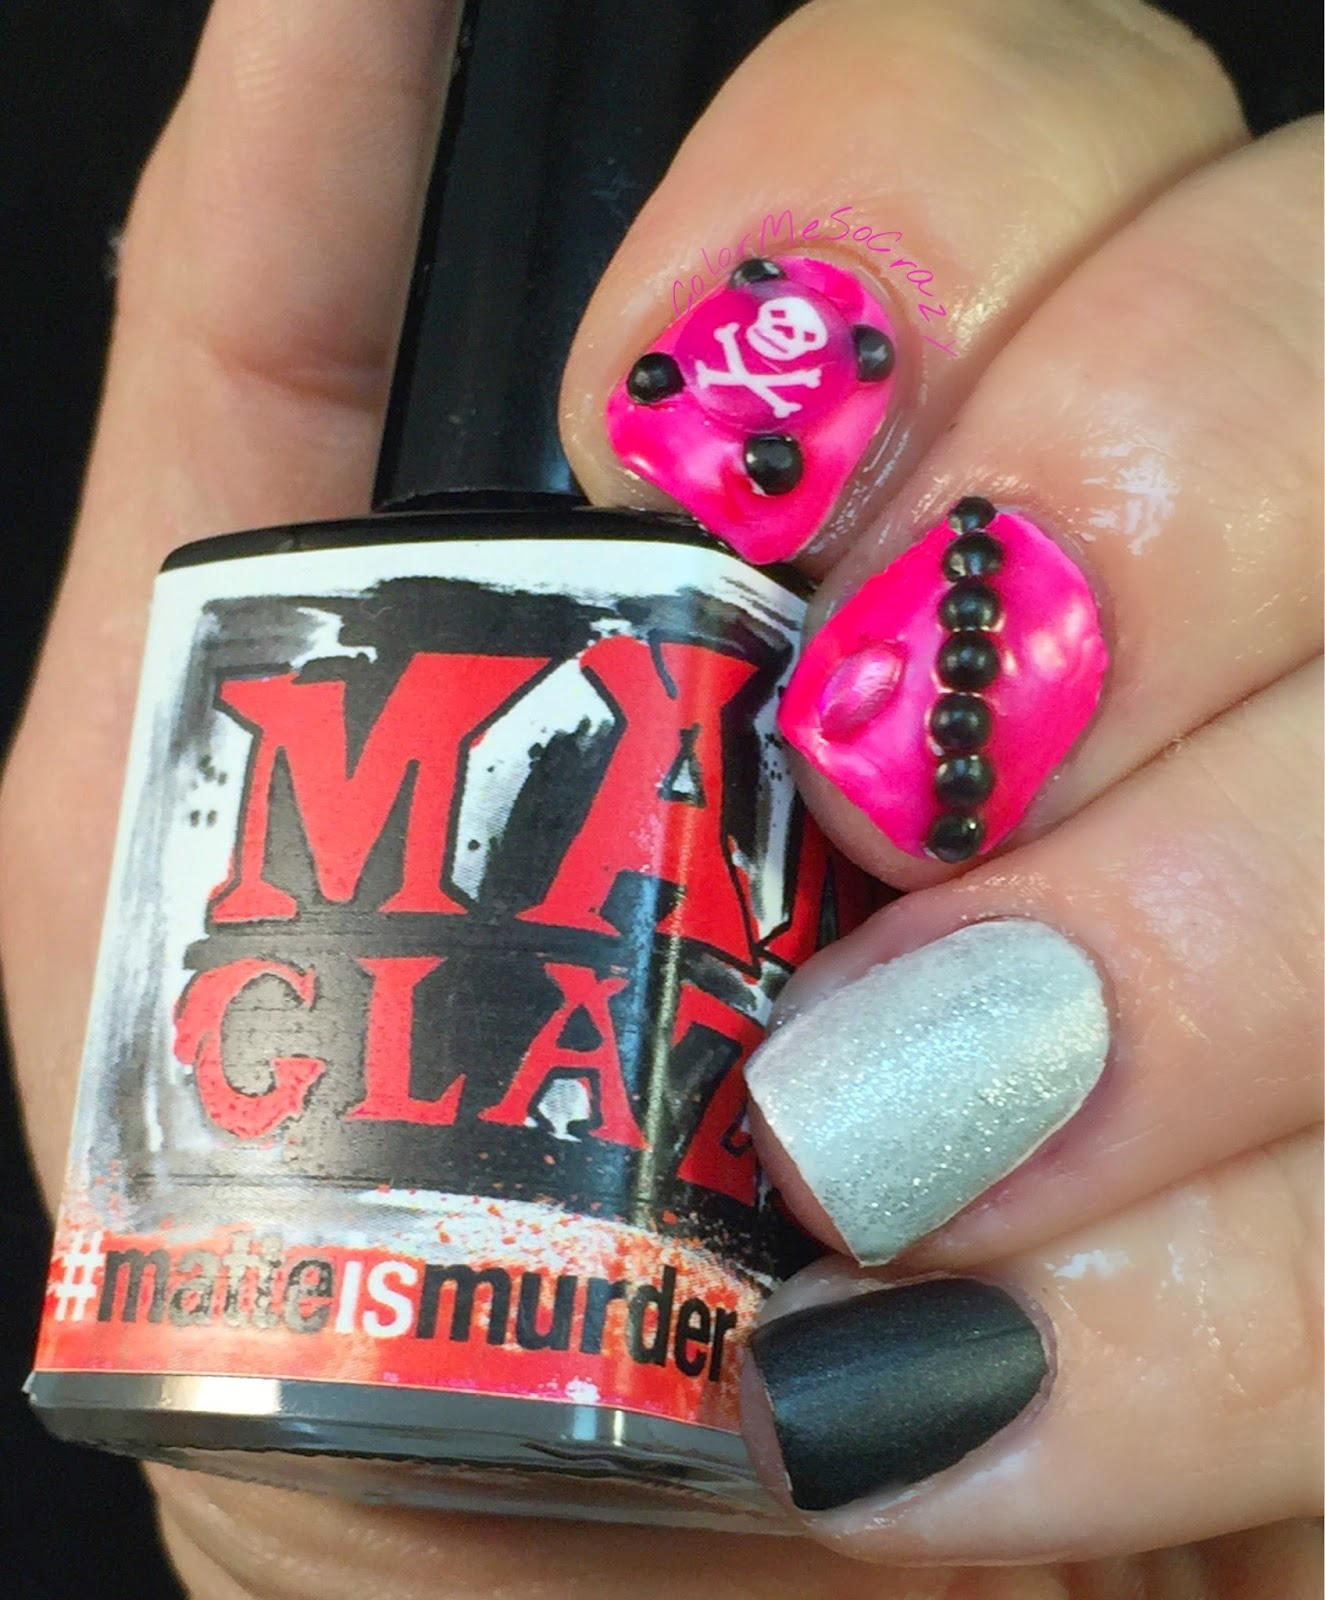 #RedCoatTuesday for Pretty Little Liars, pretty little liars nails, just rica nails, red nails, manglaze matte is murder, manglaze hot mess, just rica squishys